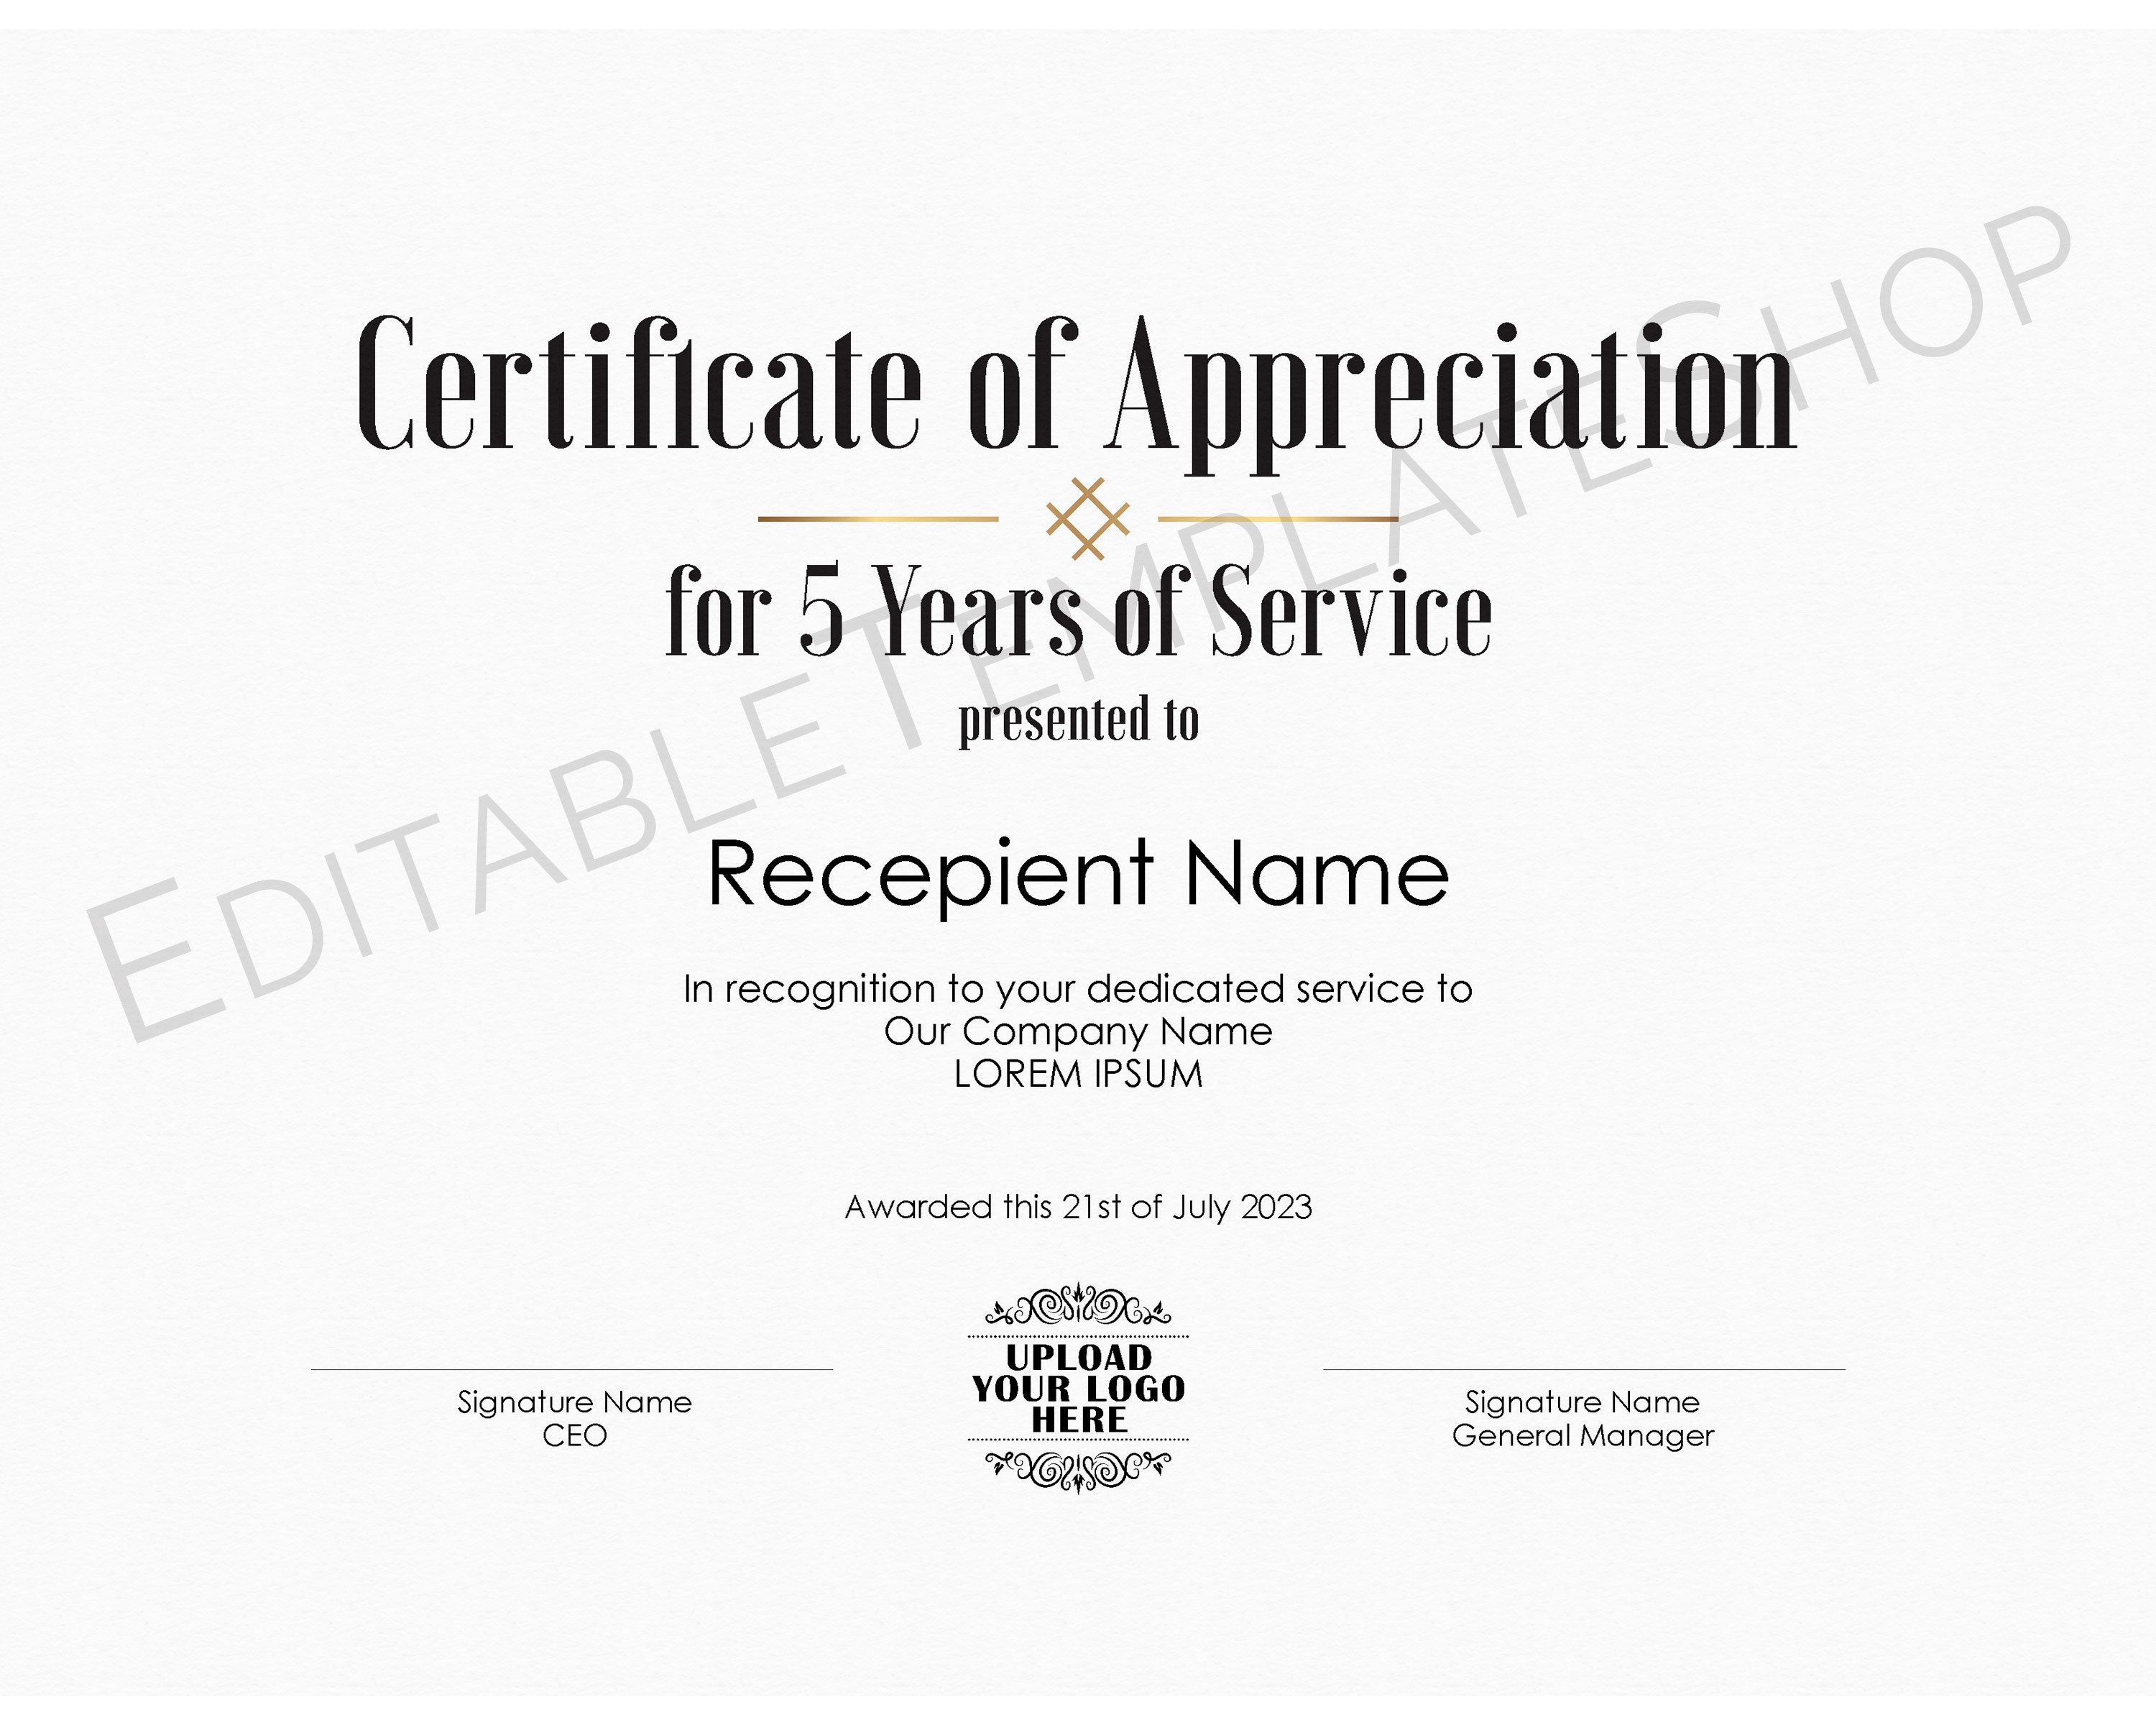 Editable Years Of Service Certificate Of Appreciation Etsy Editable Certificates Employee Awards Certificate Of Appreciation Certificates for years of service